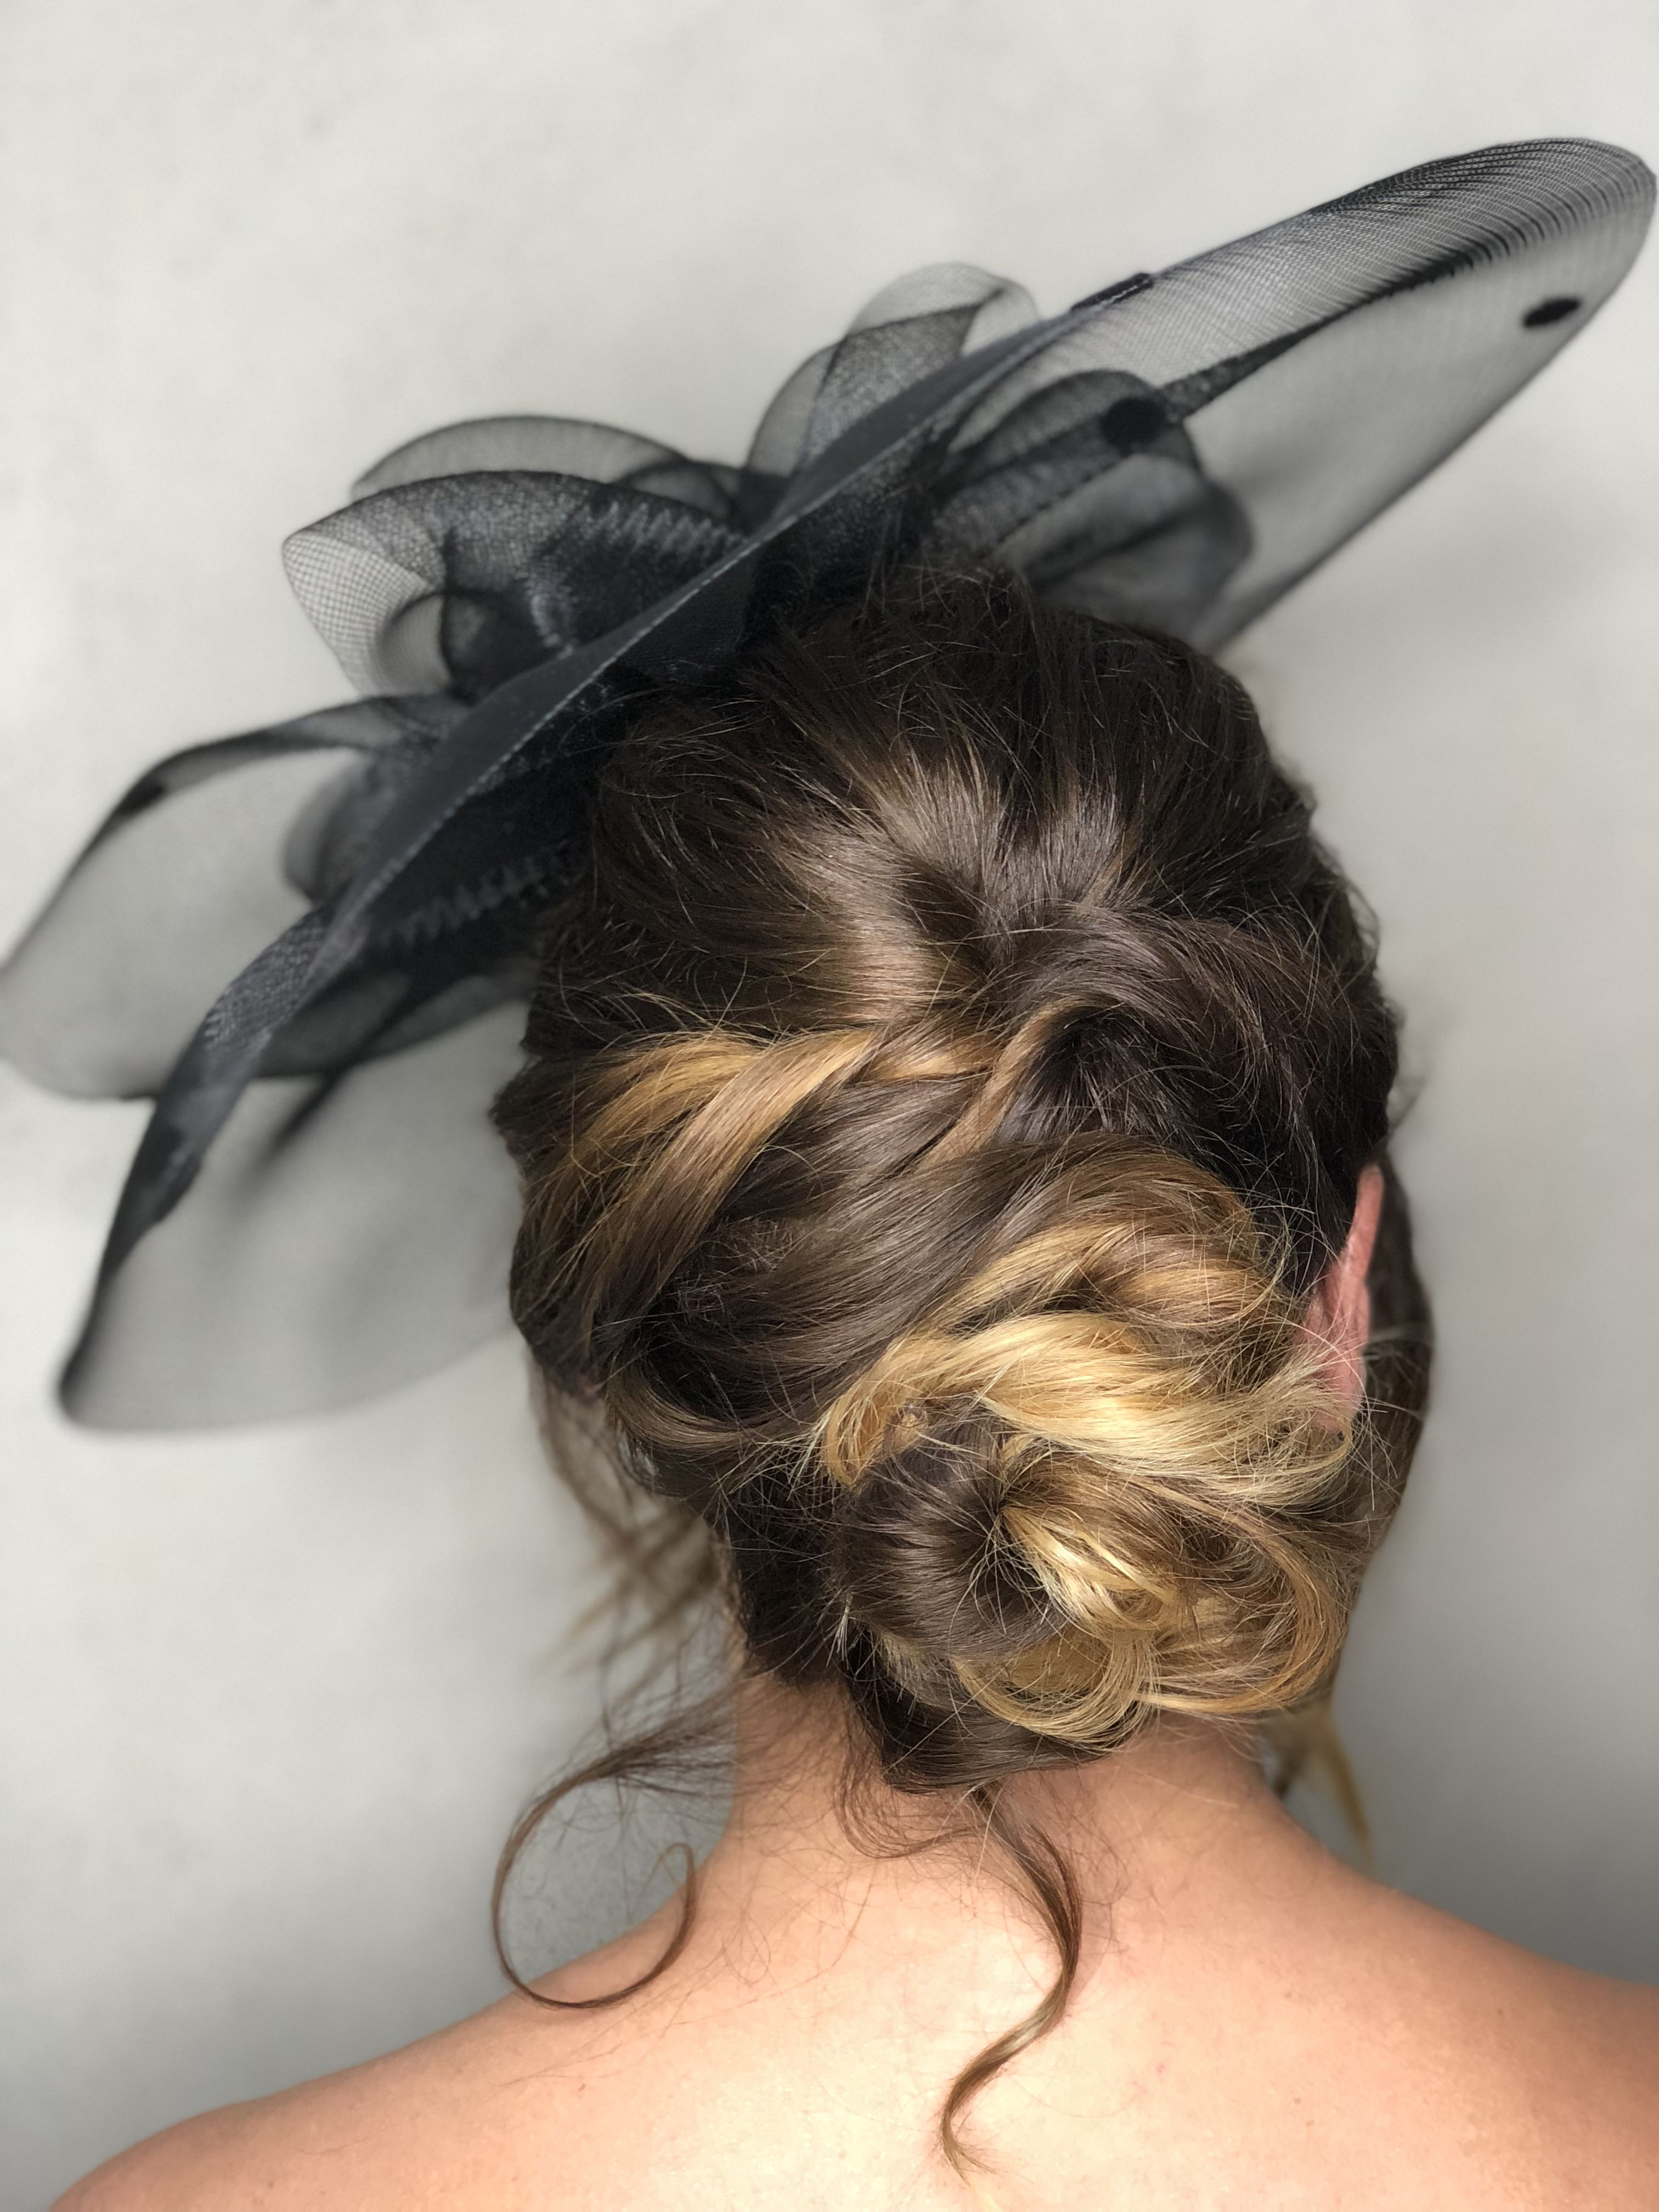 Boho hair up. Low side bun. Textured up do. Hair by me. Wedding guest. Races. #lowsidebuns